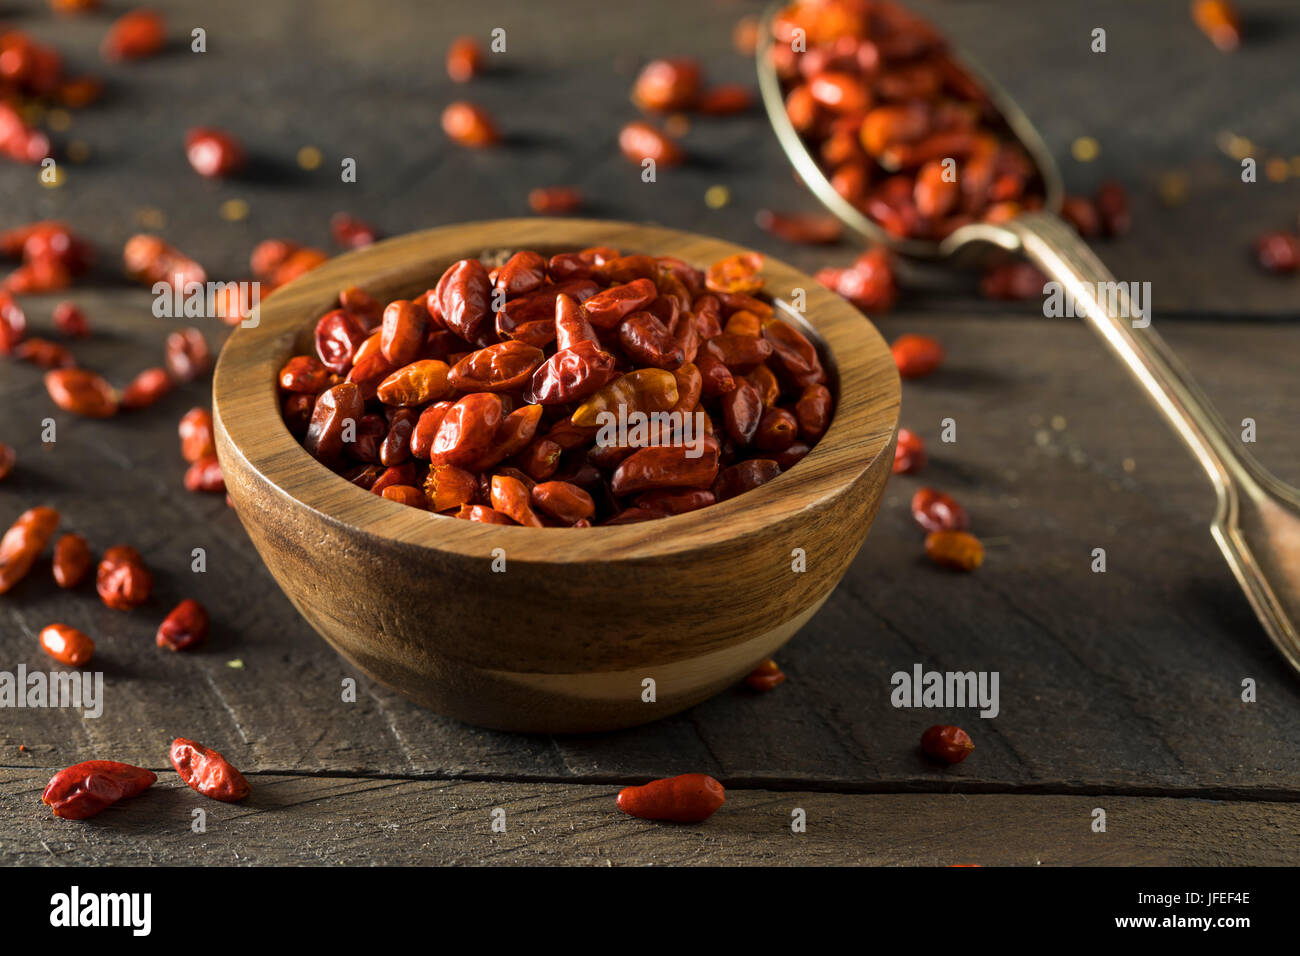 Organic Dry Small Pequin Chili Peppers in a Bowl - Stock Image